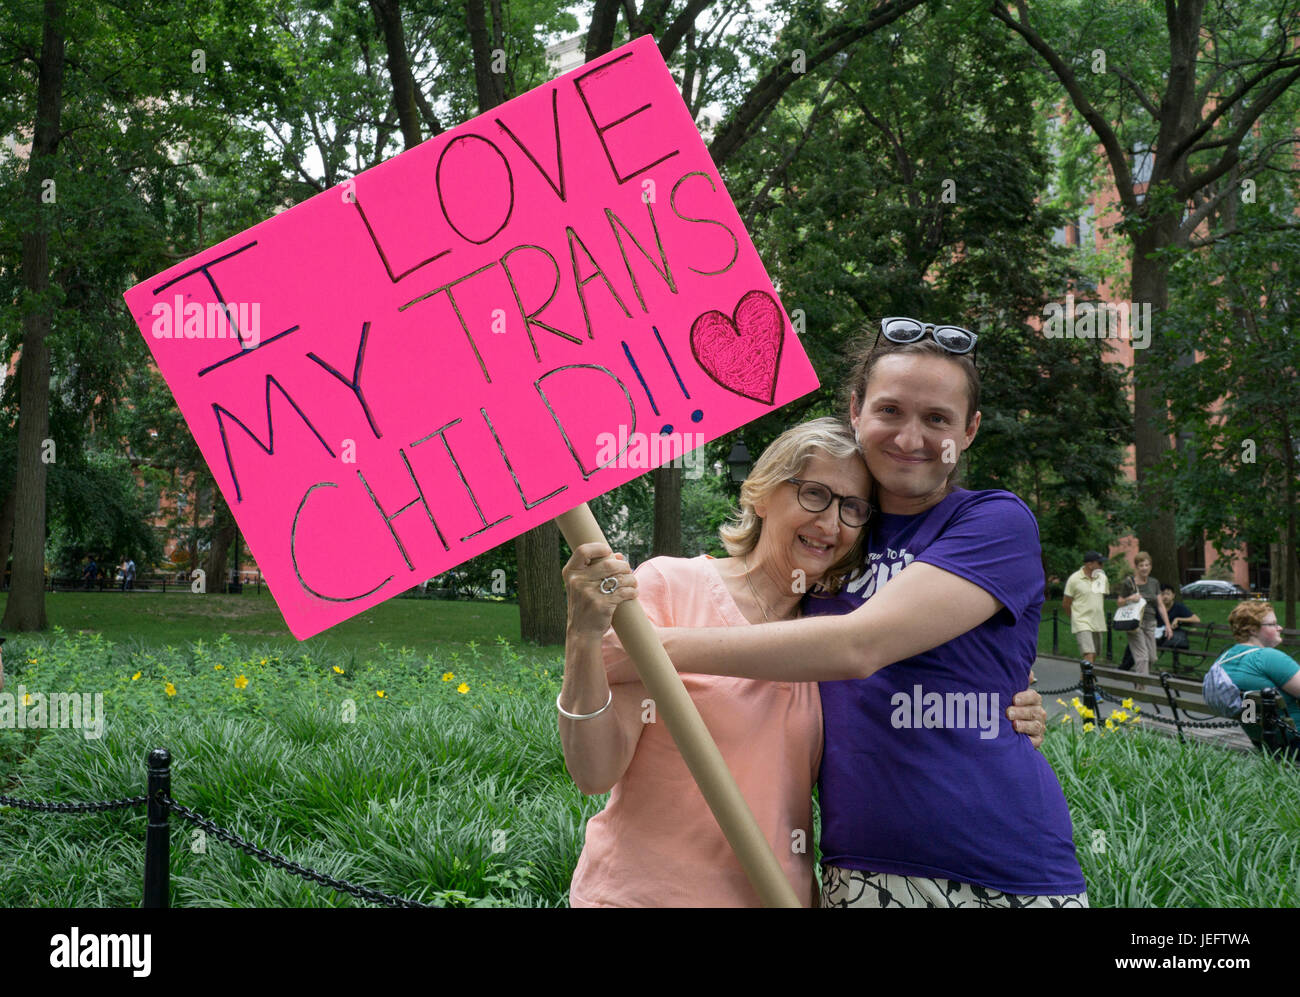 A mother with a sign supporting her transgender daughter at the Trans Day of Action rally in Washington Square Park - Stock Image